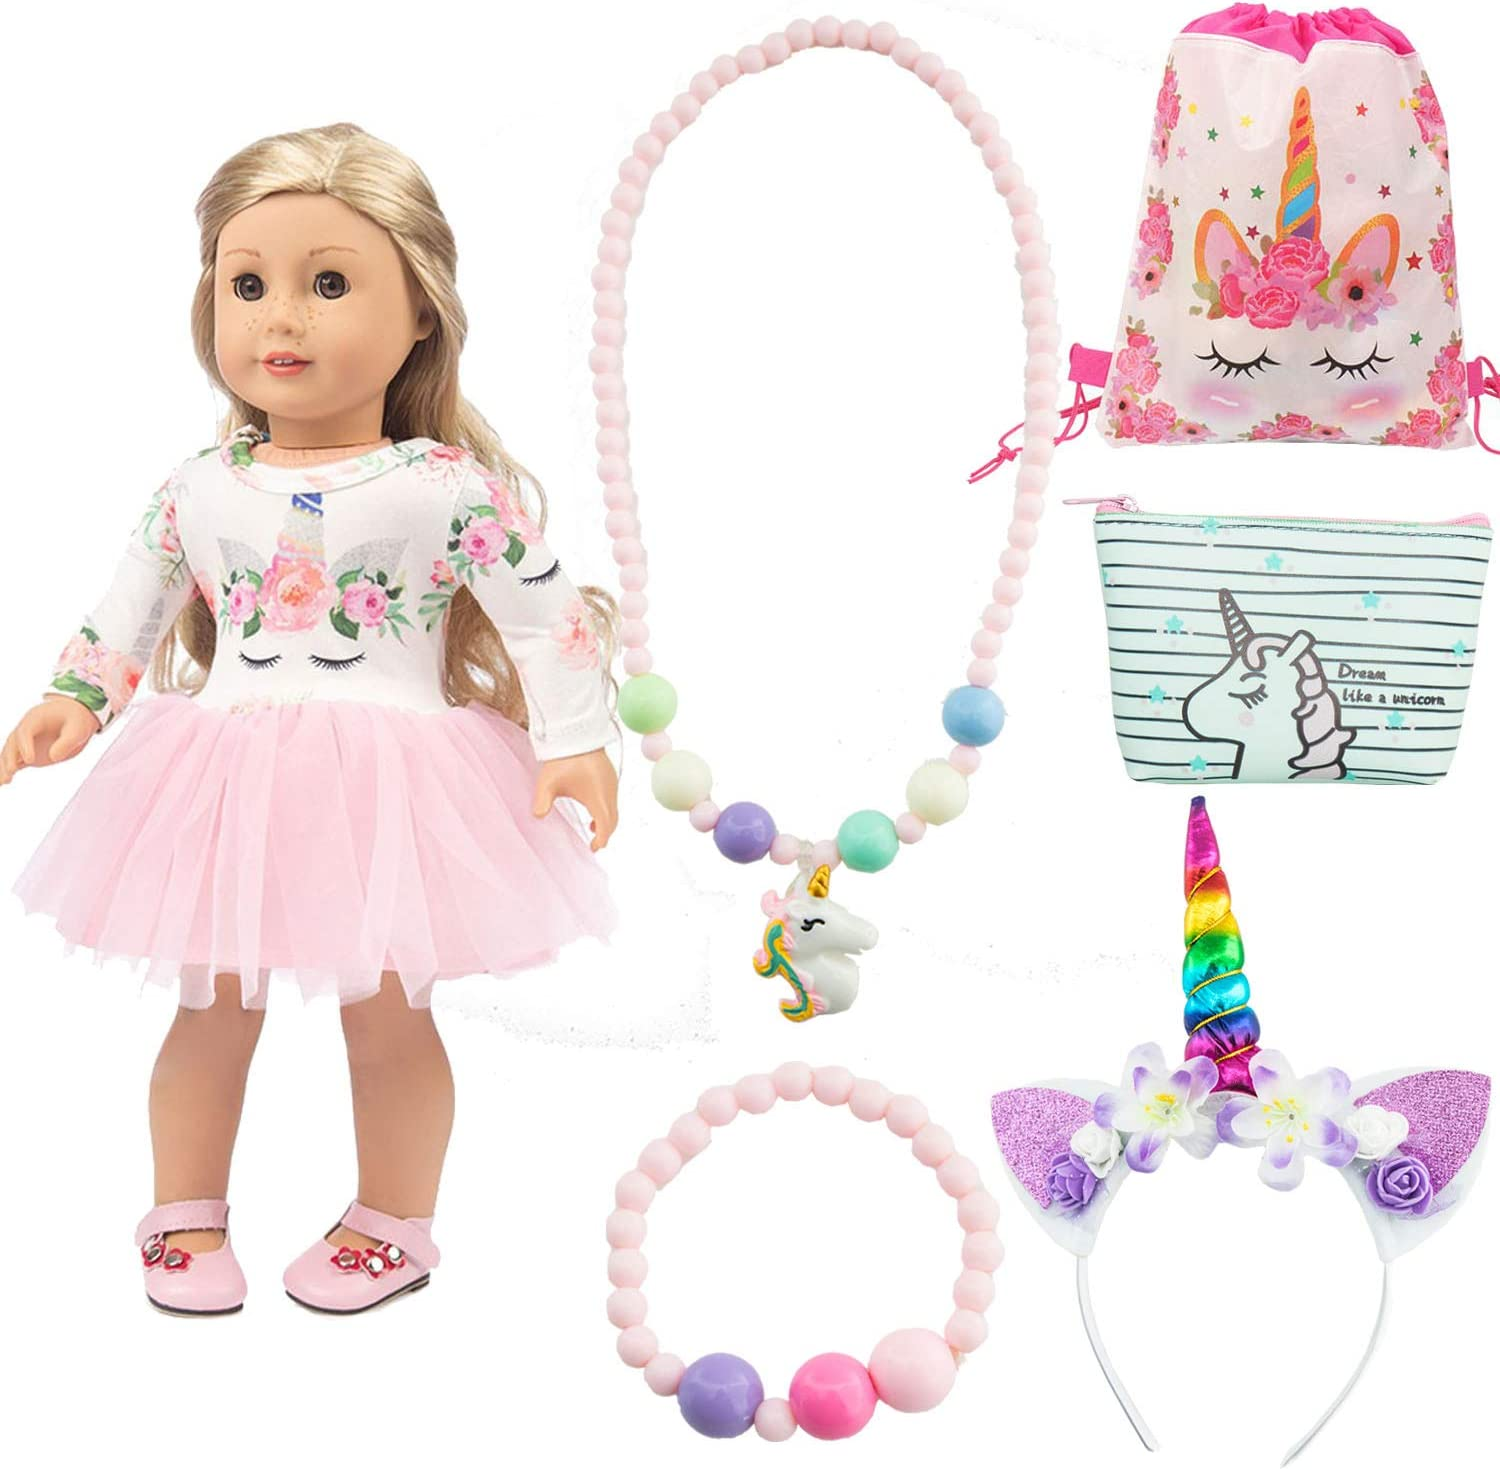 SOTOGO 6 Pieces 18 Inch Doll Clothes Unicorn Outfit for American 18 Inch Girl Doll Include 1 Set Doll Clothes and Doll Accessories for Your Girl, Girl and Doll Can Interact and Play Together